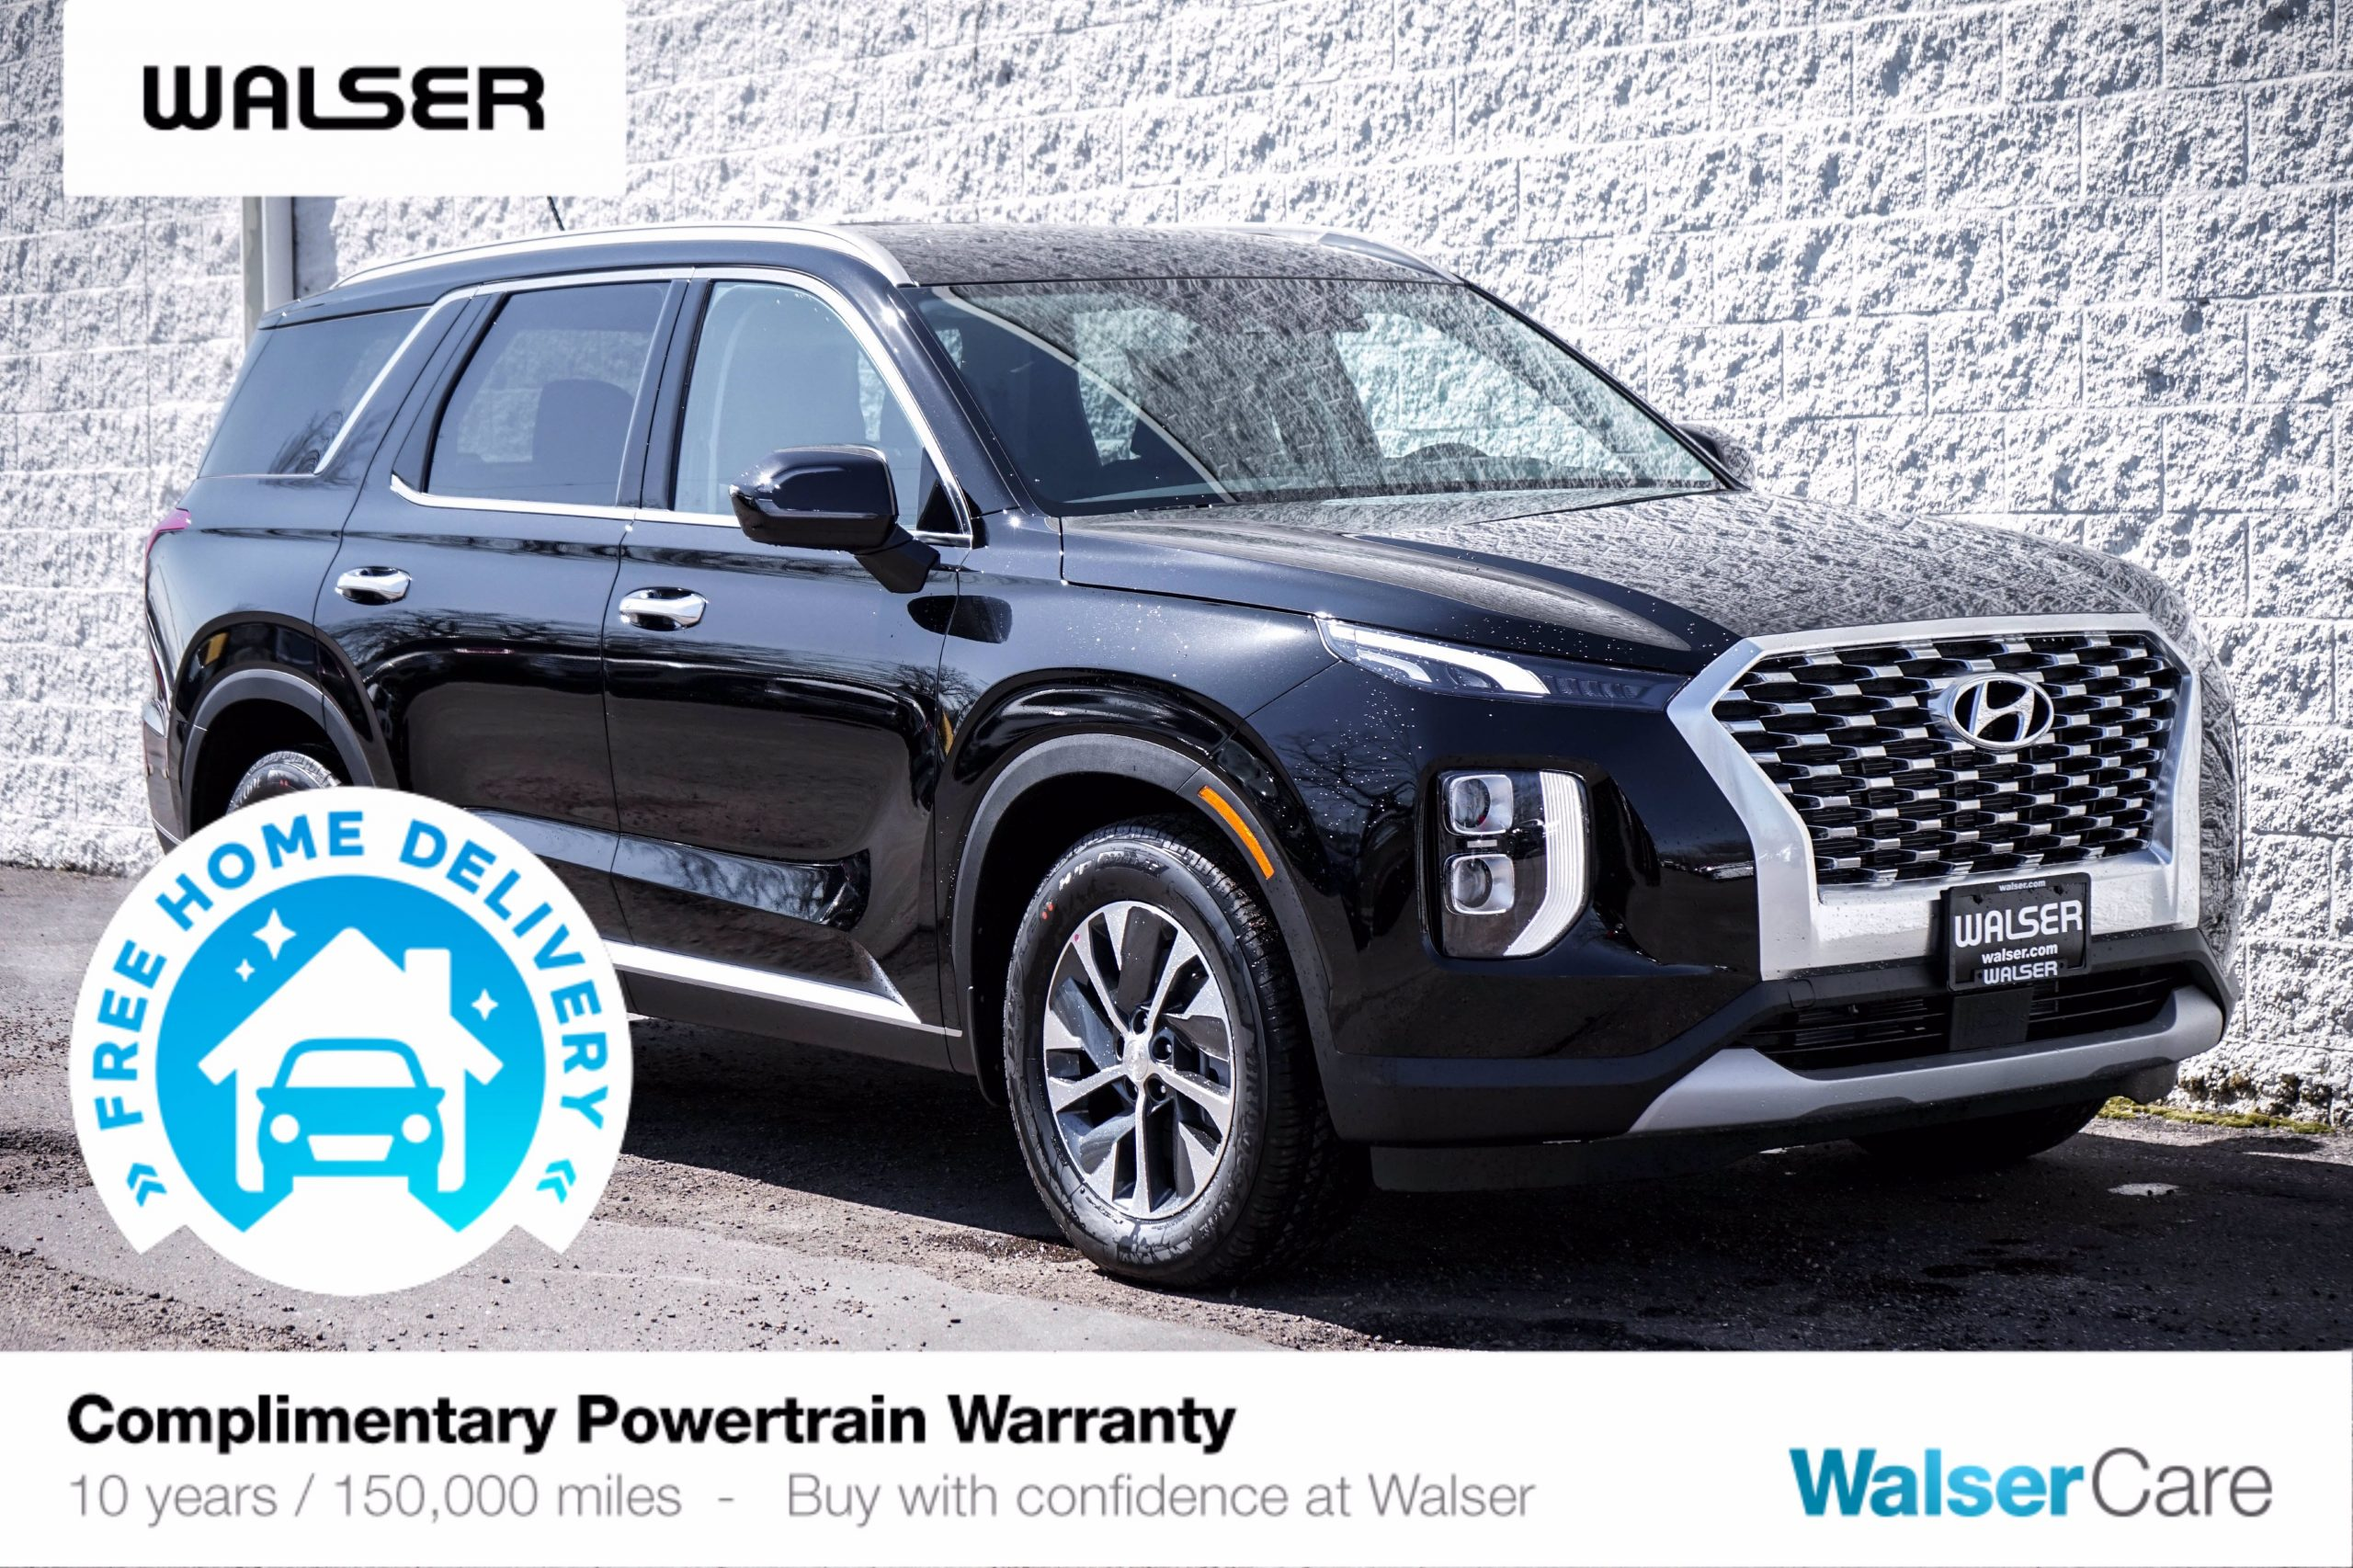 New 2021 Hyundai Palisade Sel Lease Deals, Awd Price, Awd ...